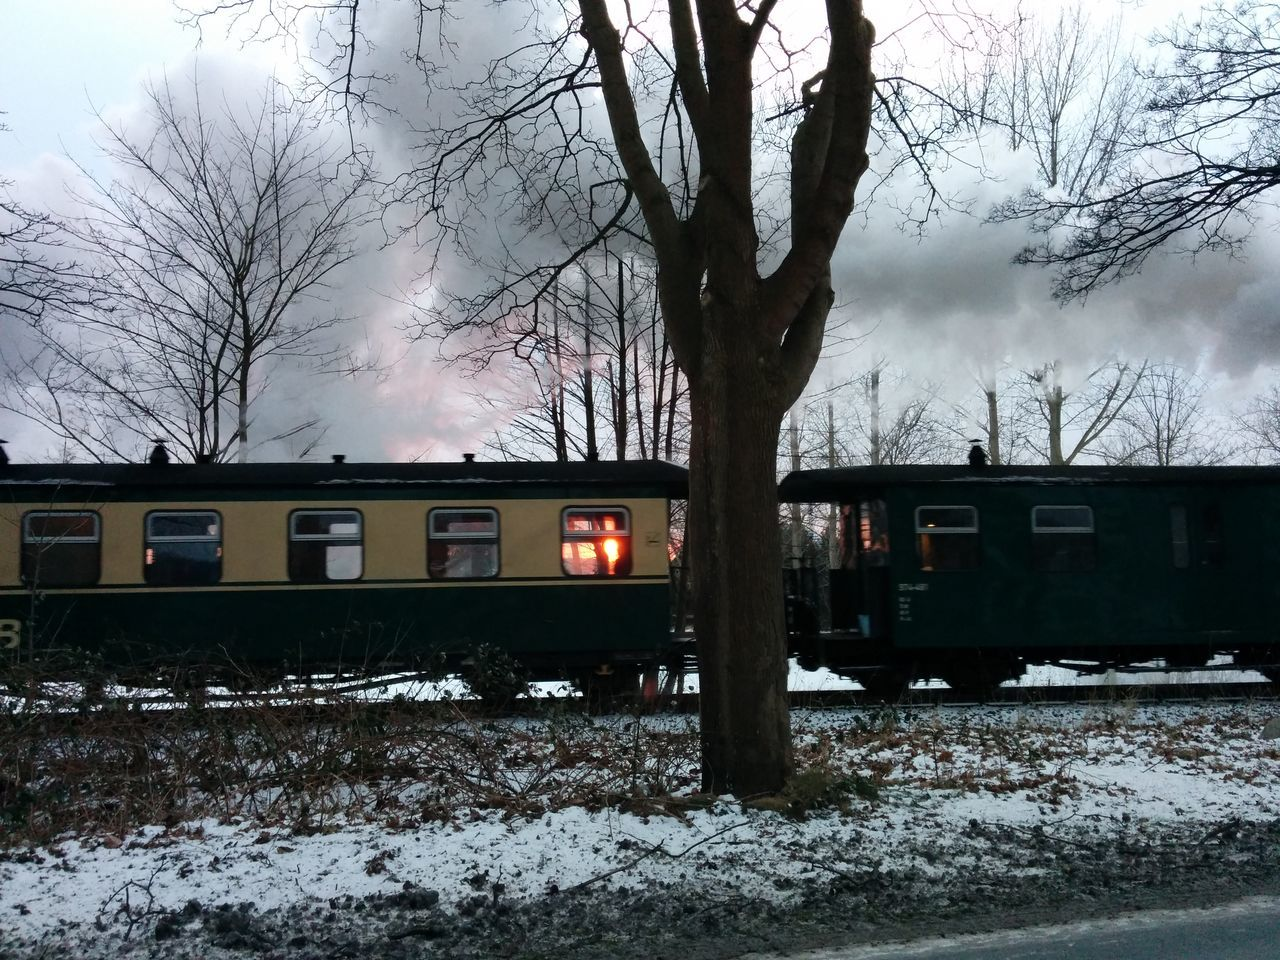 winter, snow, cold temperature, bare tree, tree, weather, transportation, mode of transport, rail transportation, nature, field, public transportation, railroad track, branch, outdoors, train - vehicle, no people, sky, landscape, day, beauty in nature, bleak